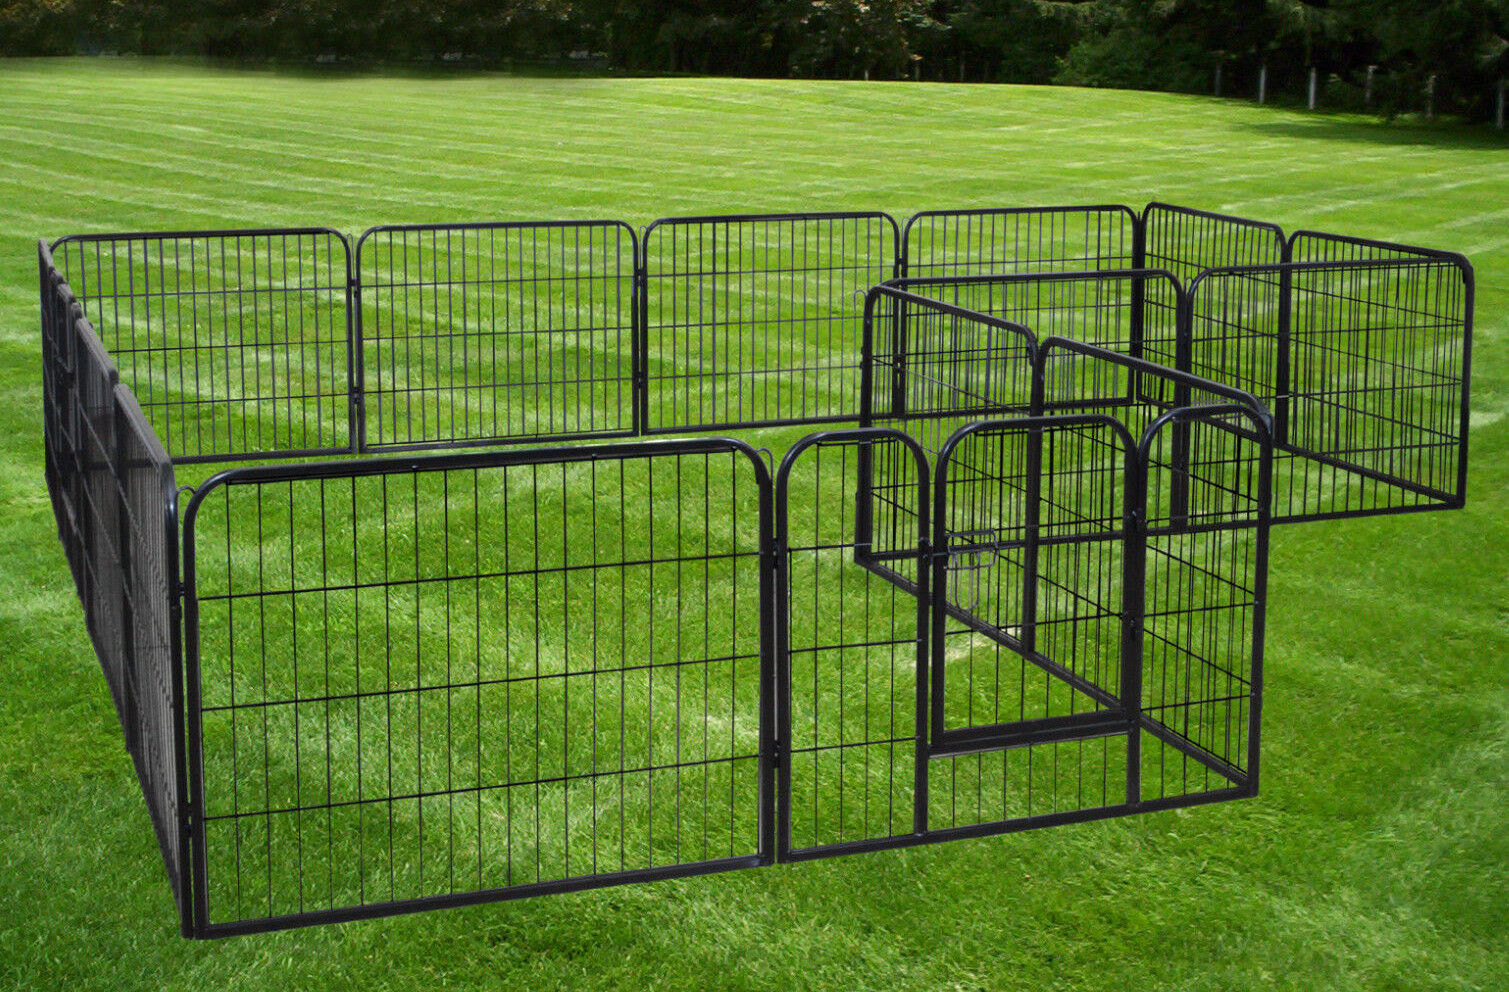 Клетки и ящики (Для собак) Large 16 Panels Pet Dog Cat Metal Exercise Barrier Fence Playpen Kennel Yard New